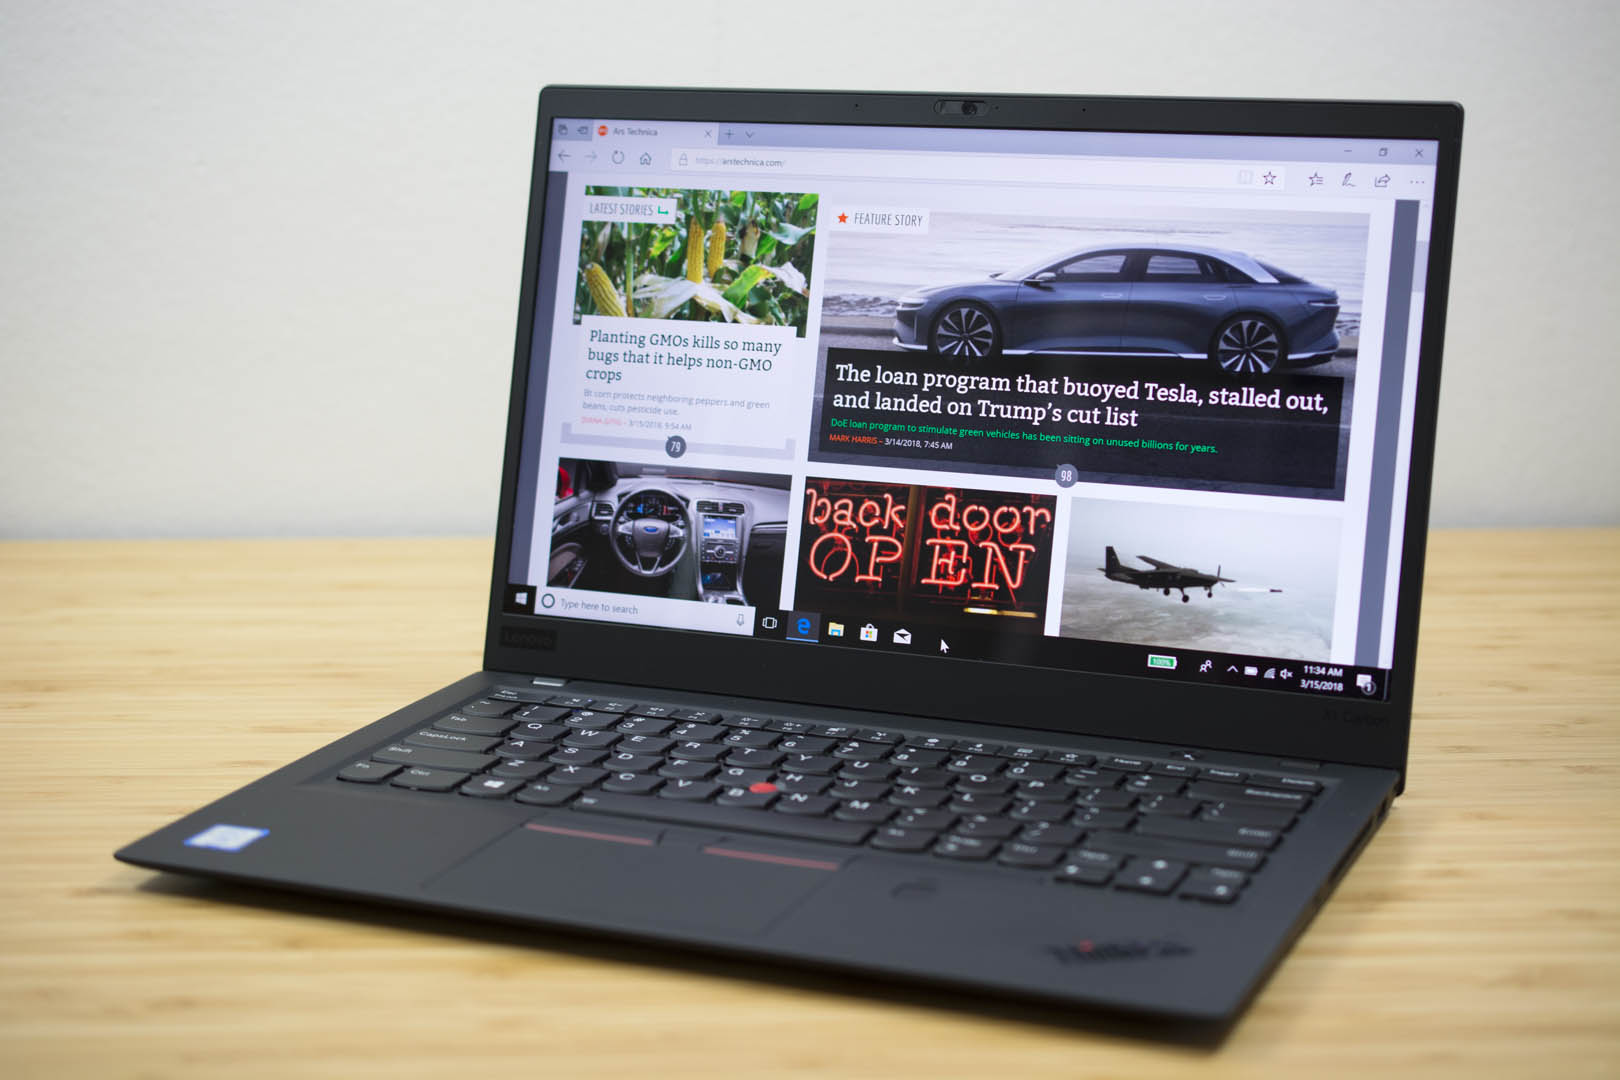 Lenovo's ThinkPad X1 Carbon is on sale for Memorial Day.